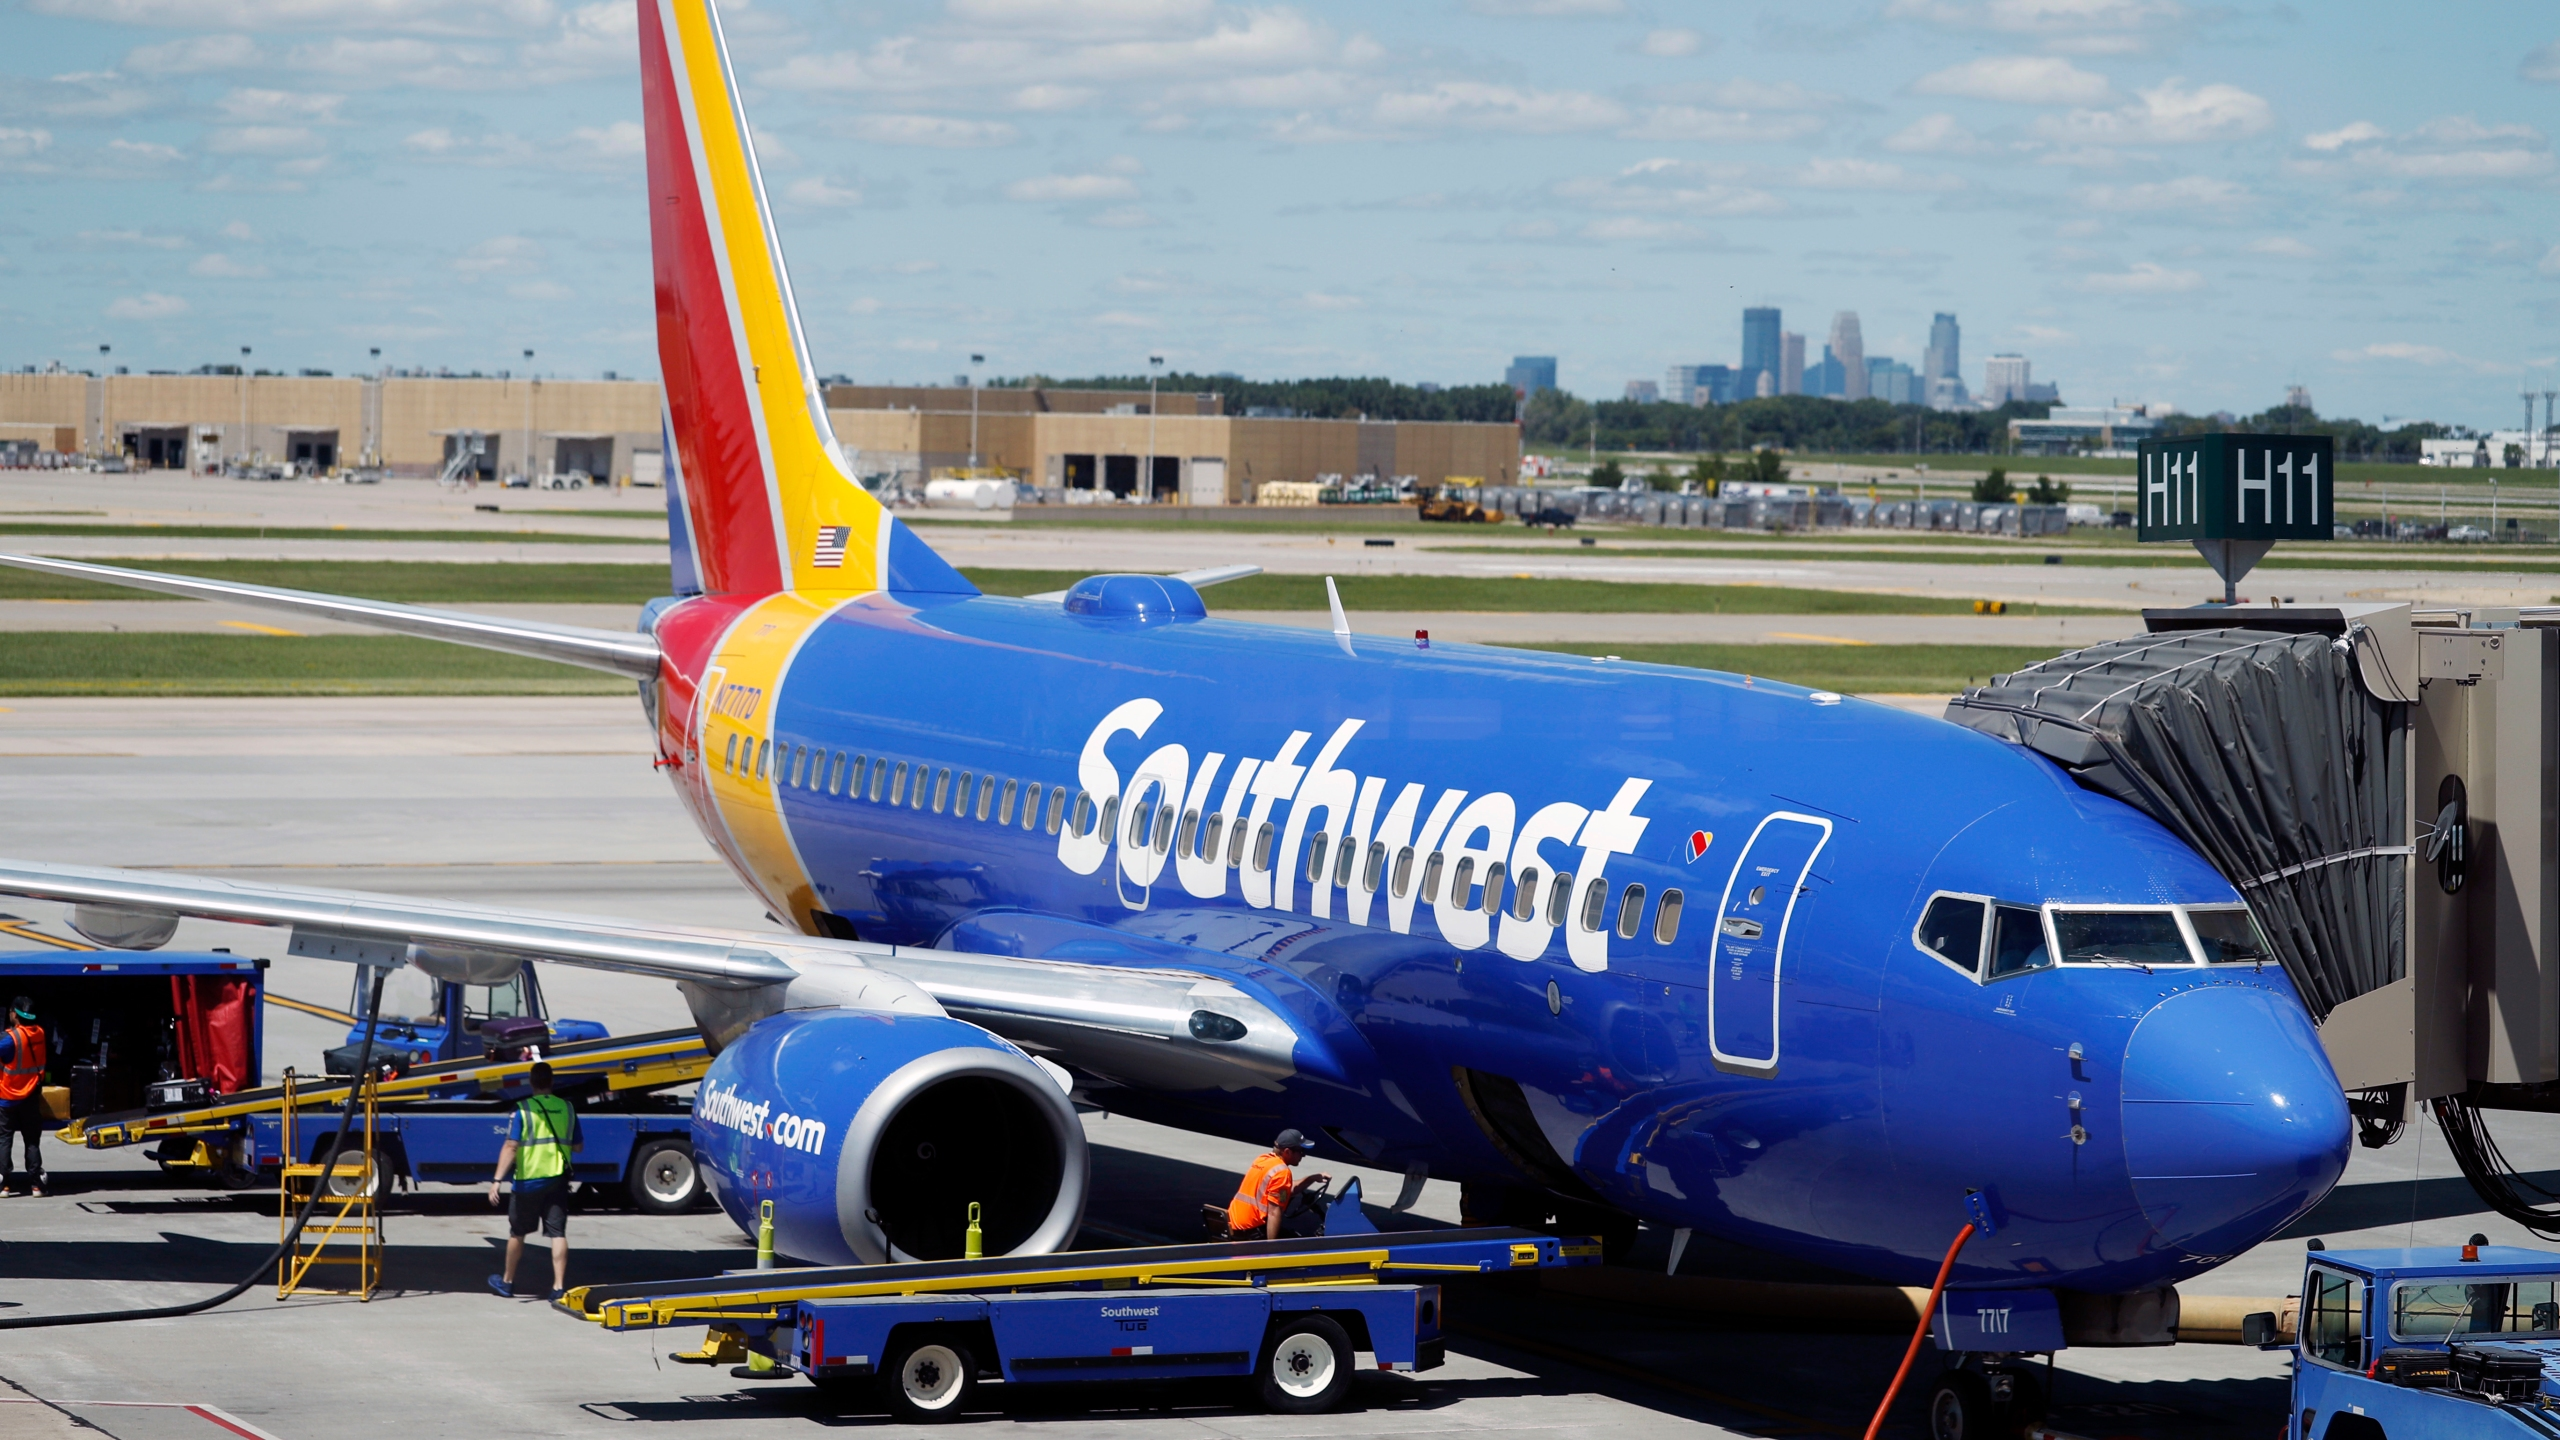 Earns_Southwest_Airlines_42751-159532.jpg65695202